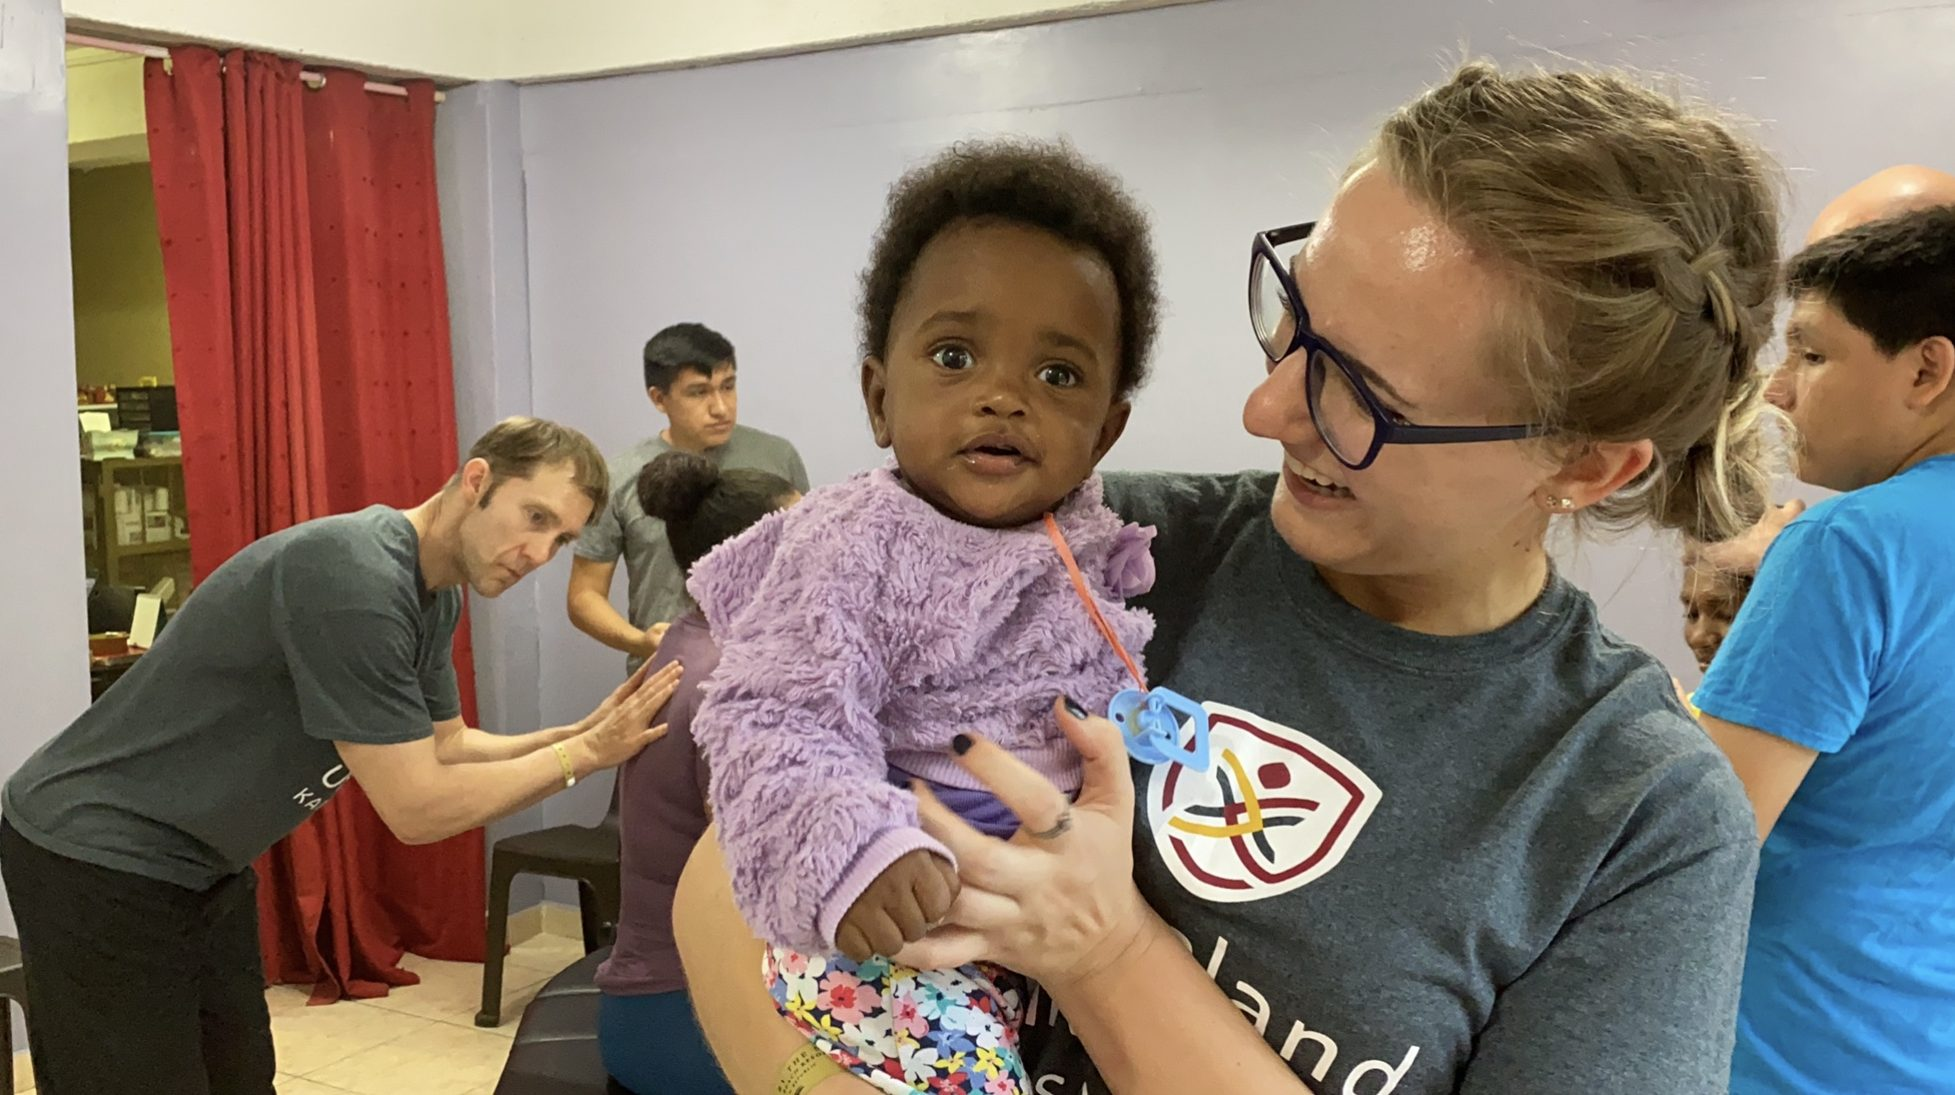 CUKC College of Chiropractic students go on healthcare mission trips